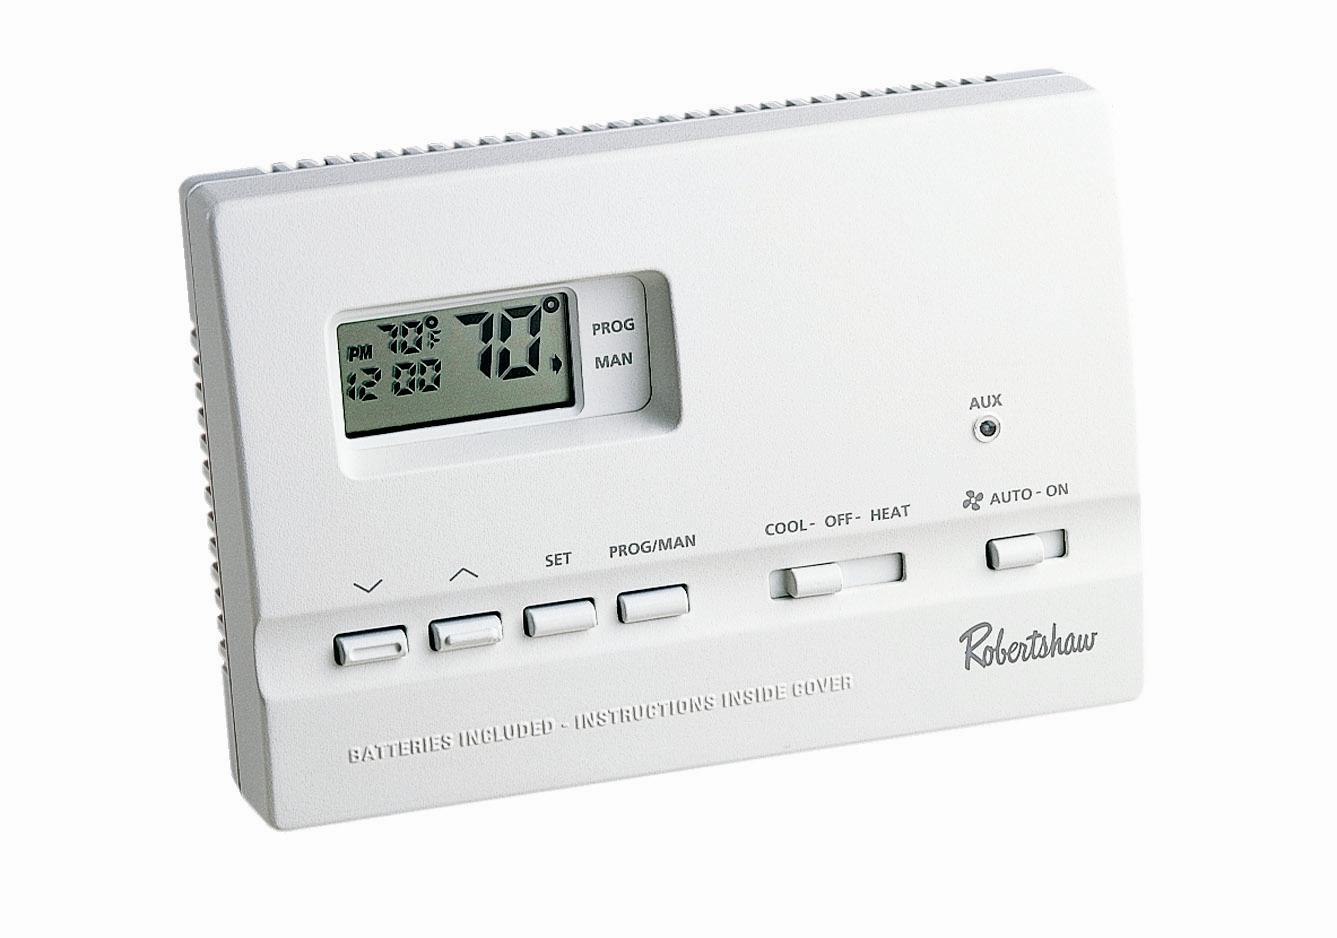 Digital Thermostat 9615, 2 Heat / 2 Cool, 7 Day Programmable